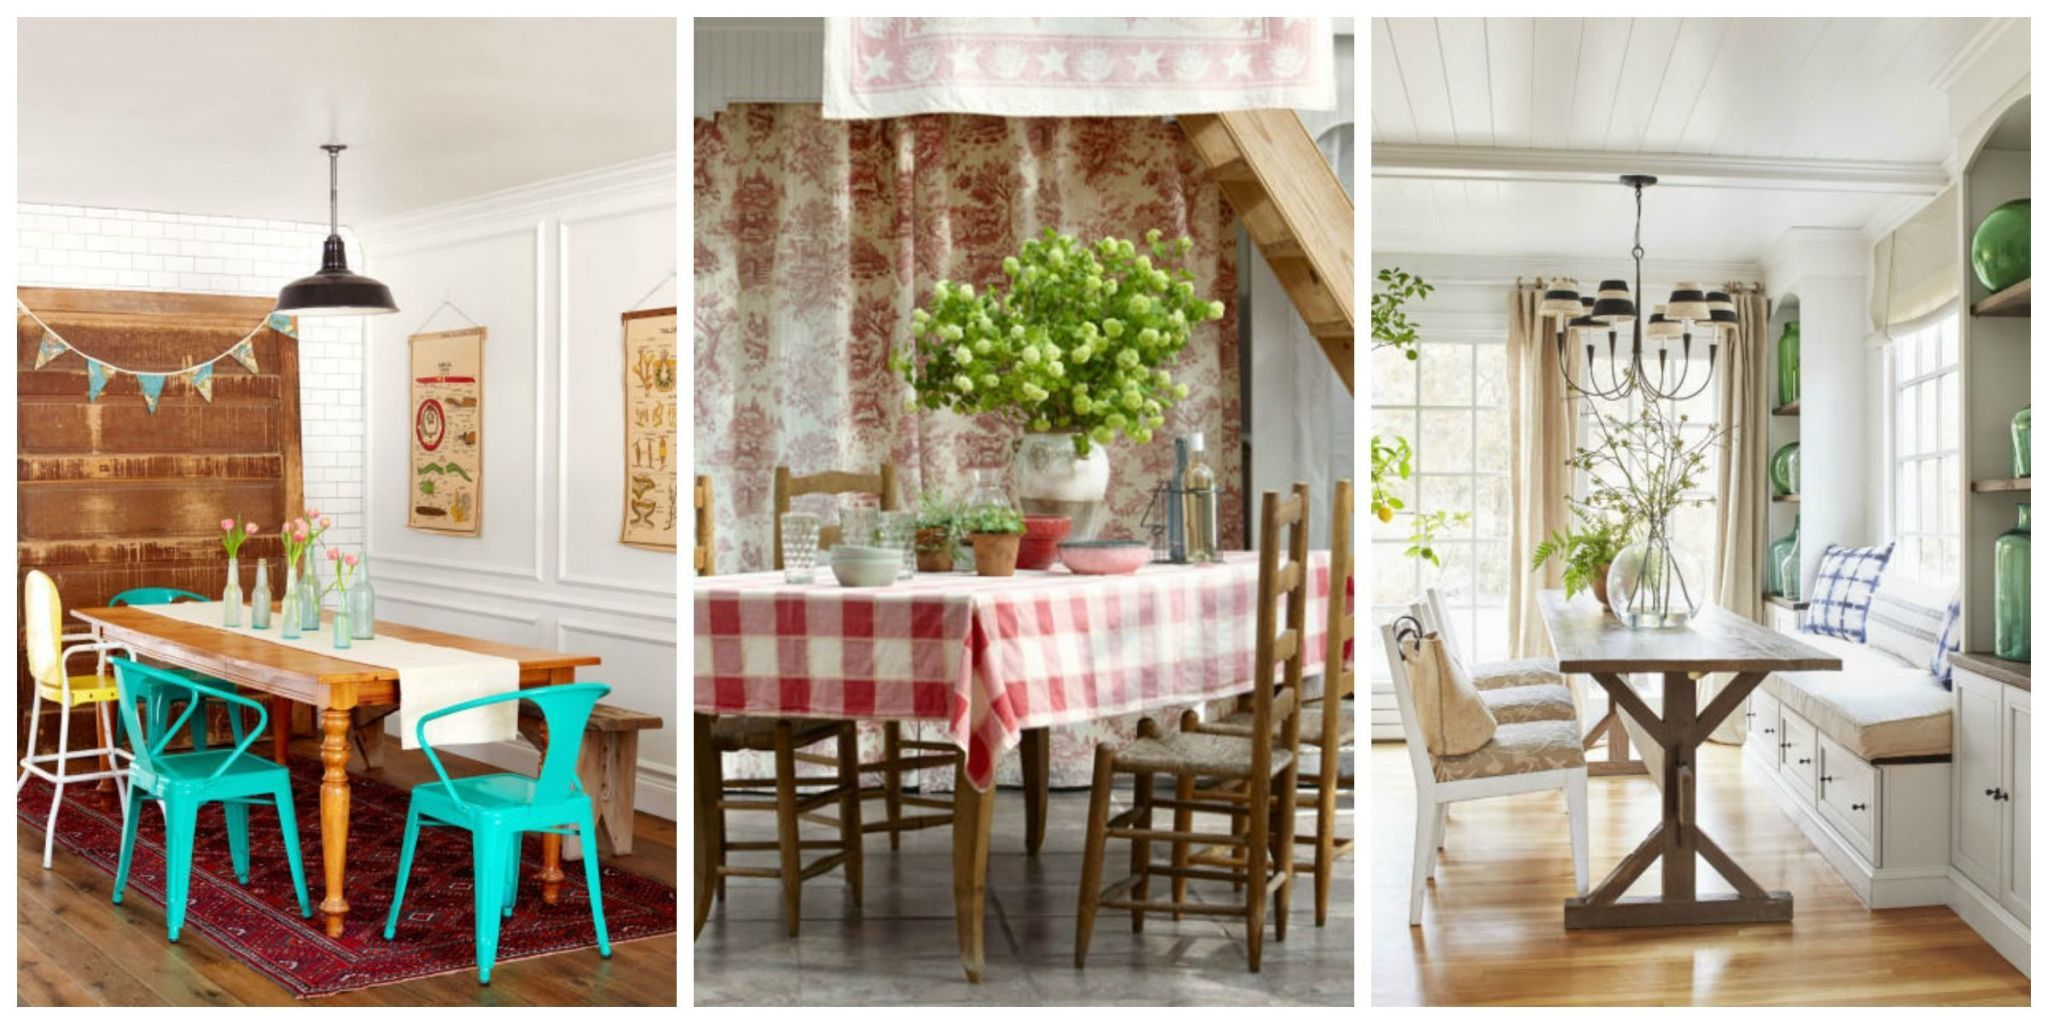 Merveilleux From Floral Themes To Vintage Furniture, Our Dining Room Design Guide Will  Help You Transform Your Dining Space In No Time. Plus, Makeover Your  Kitchen, ...